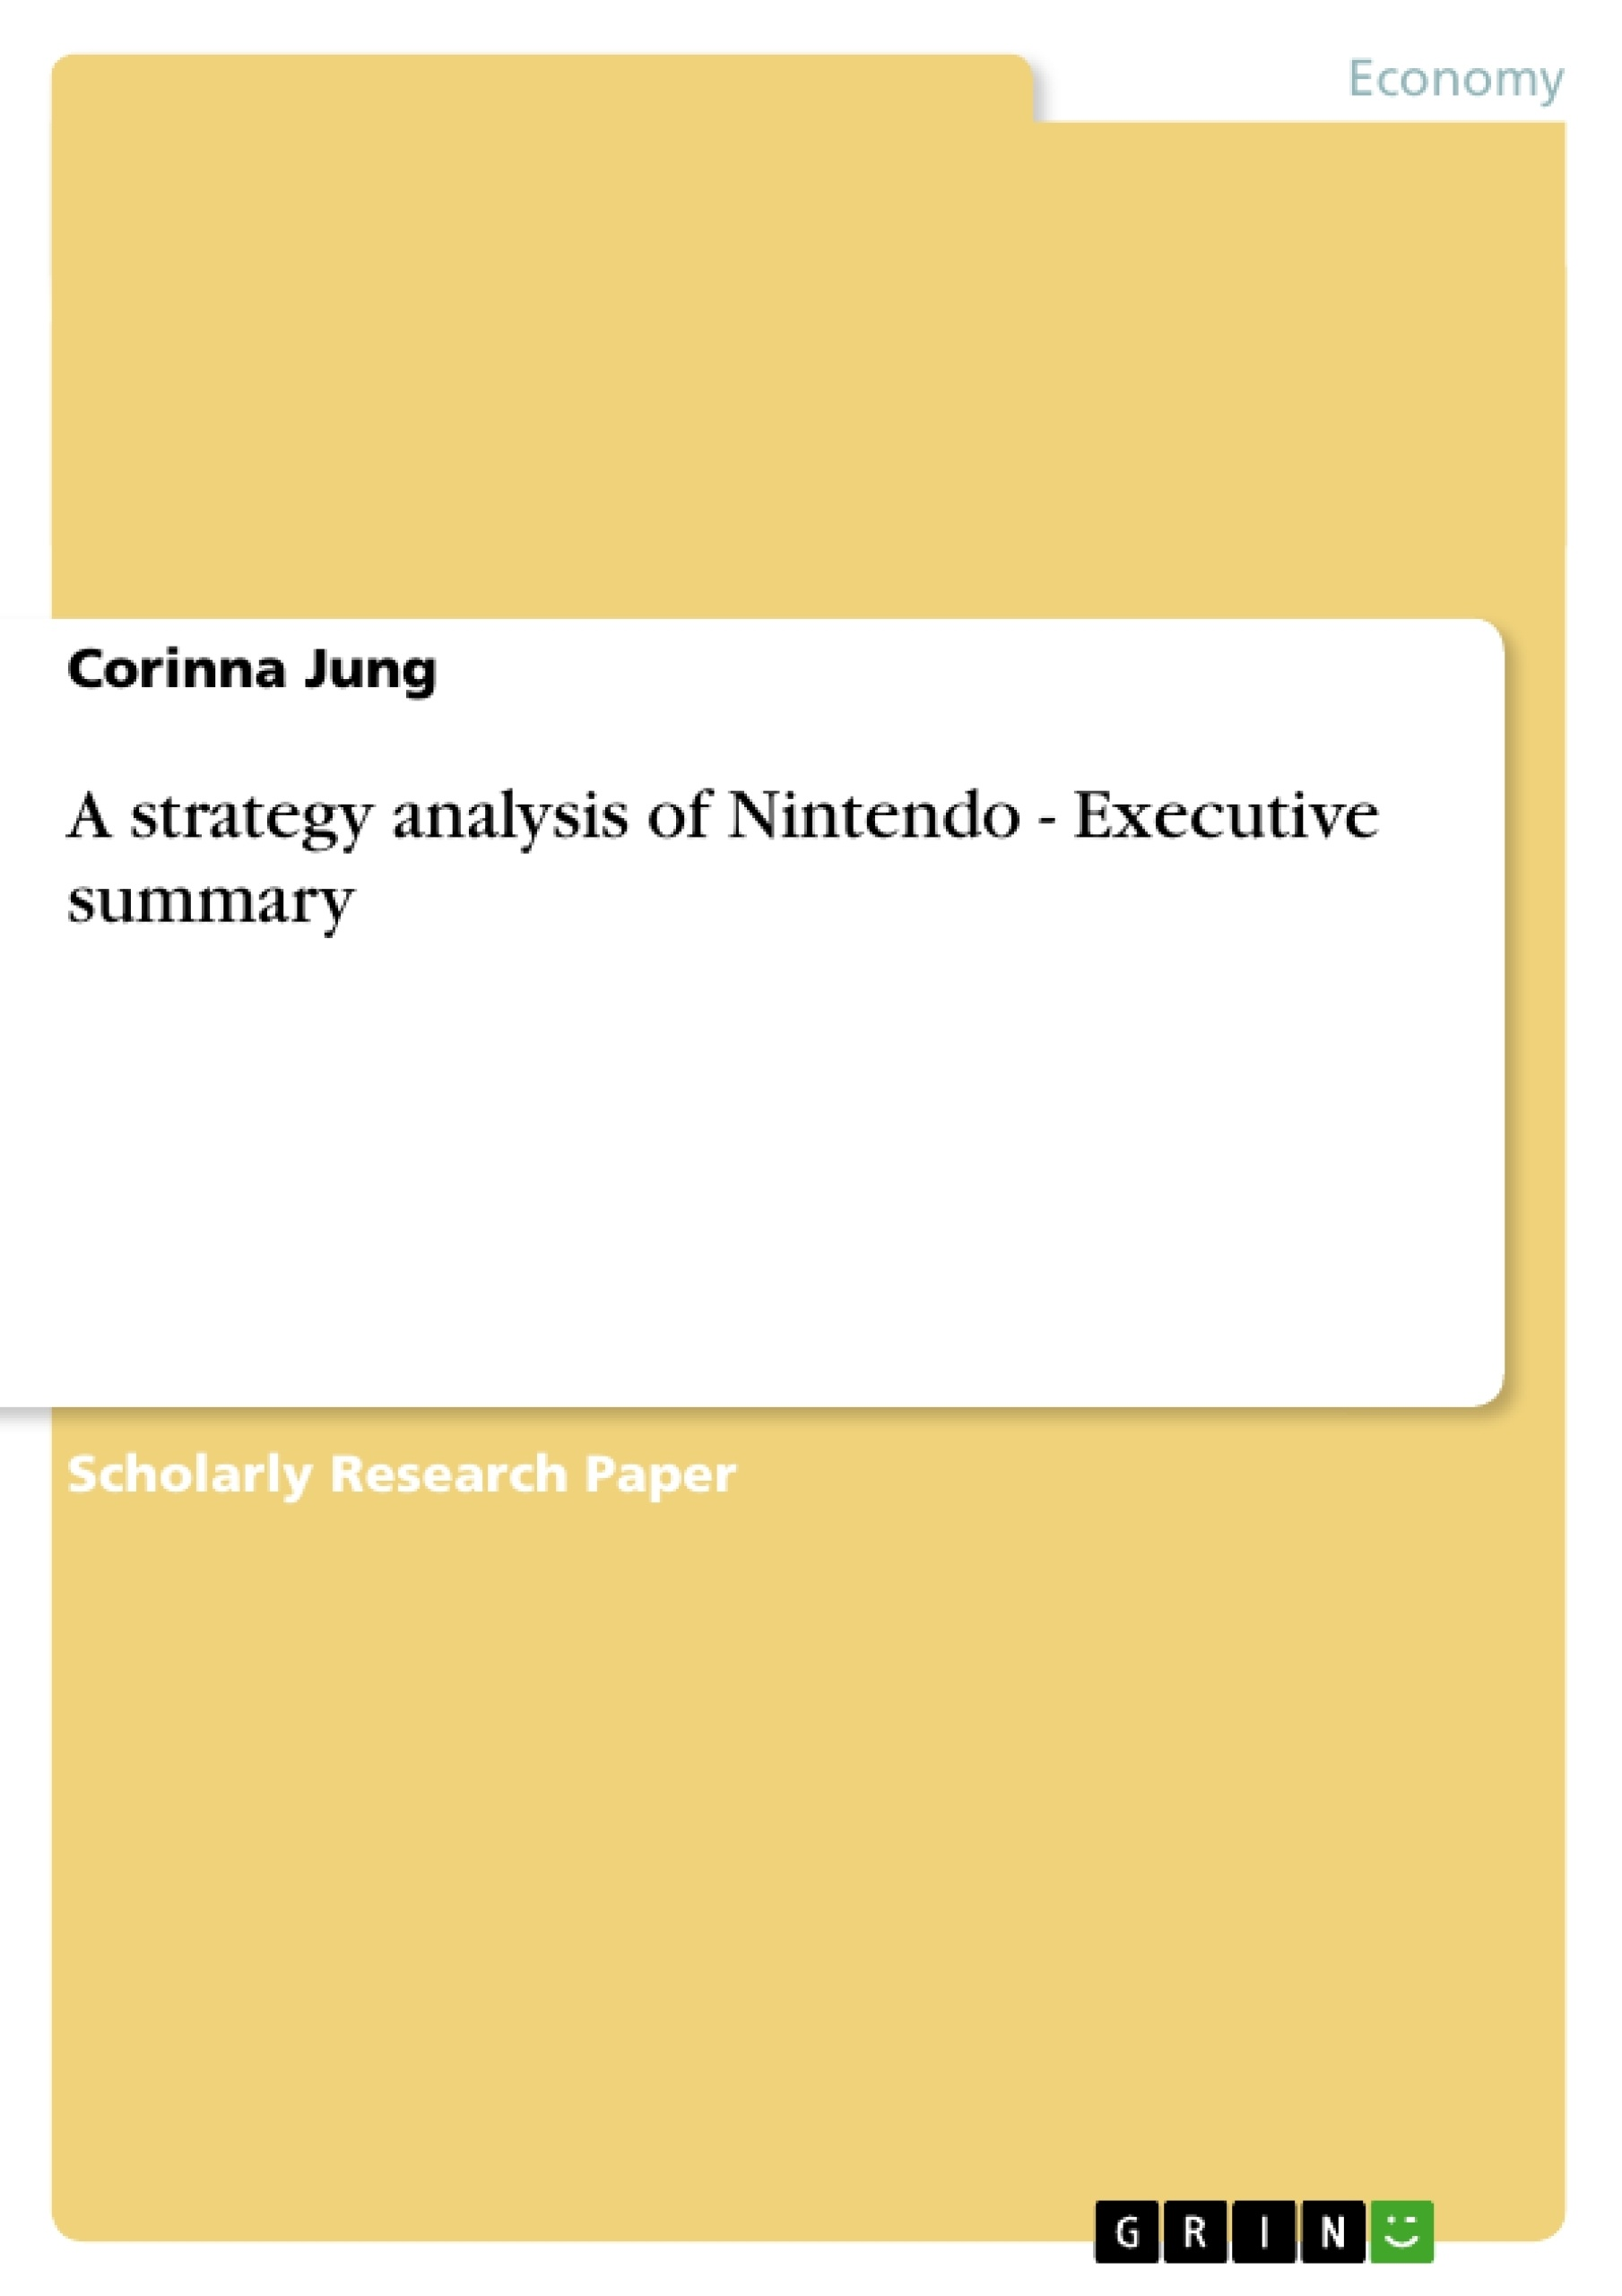 a strategy analysis of nintendo executive summary publish your a strategy analysis of nintendo executive summary publish your master s thesis bachelor s thesis essay or term paper